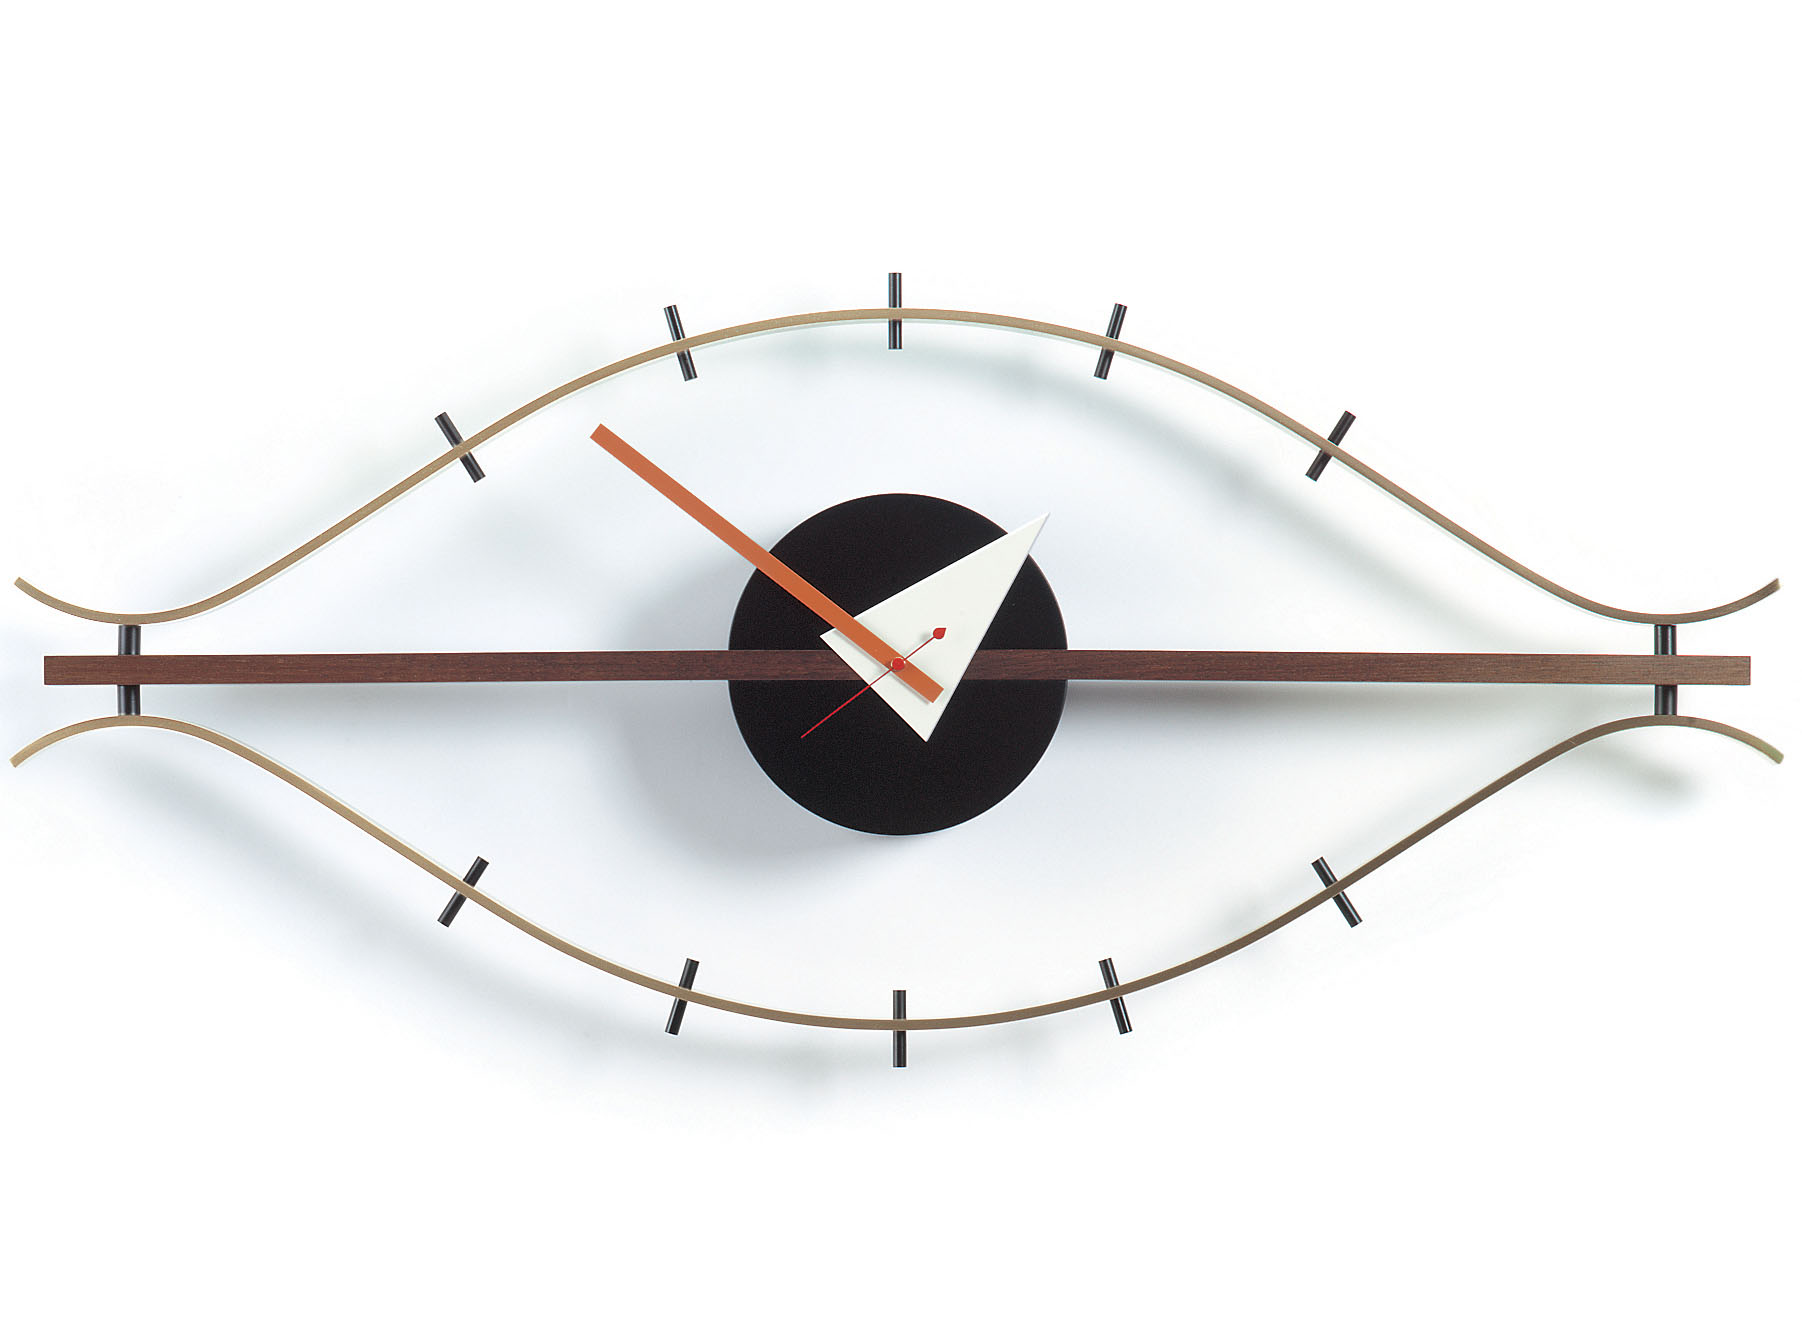 george nelson eye clock  design  vitra wall clocks  nova  - george nelson eye clock  design  vitra wall clocks